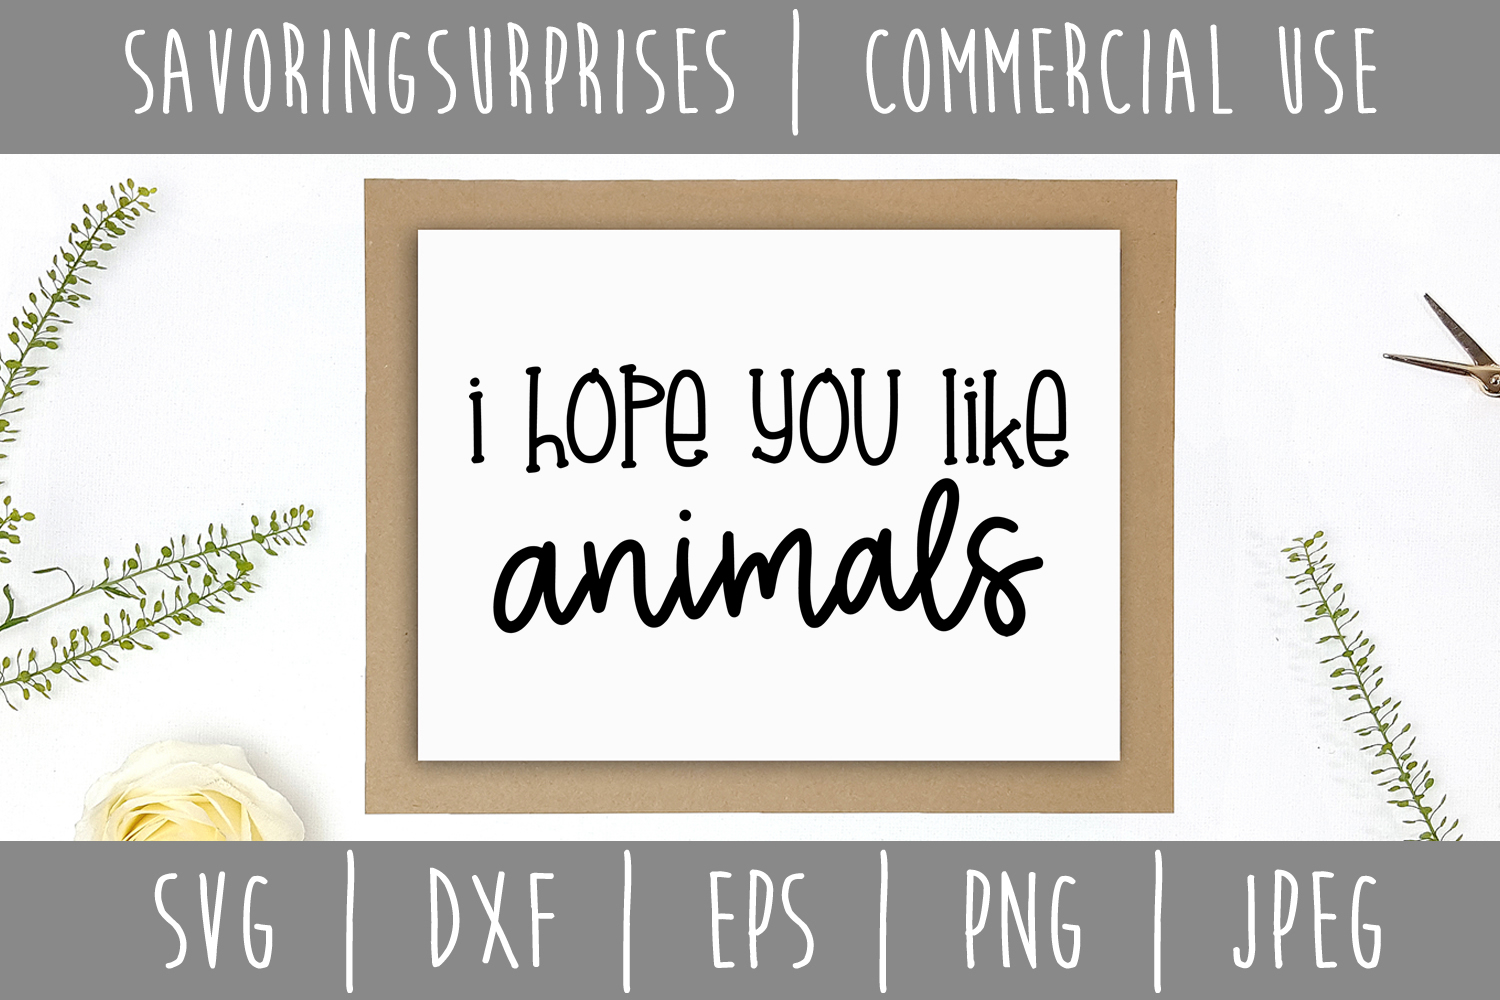 I Hope You Like Animals Doormat SVG, DXF, EPS, PNG JPEG example image 2